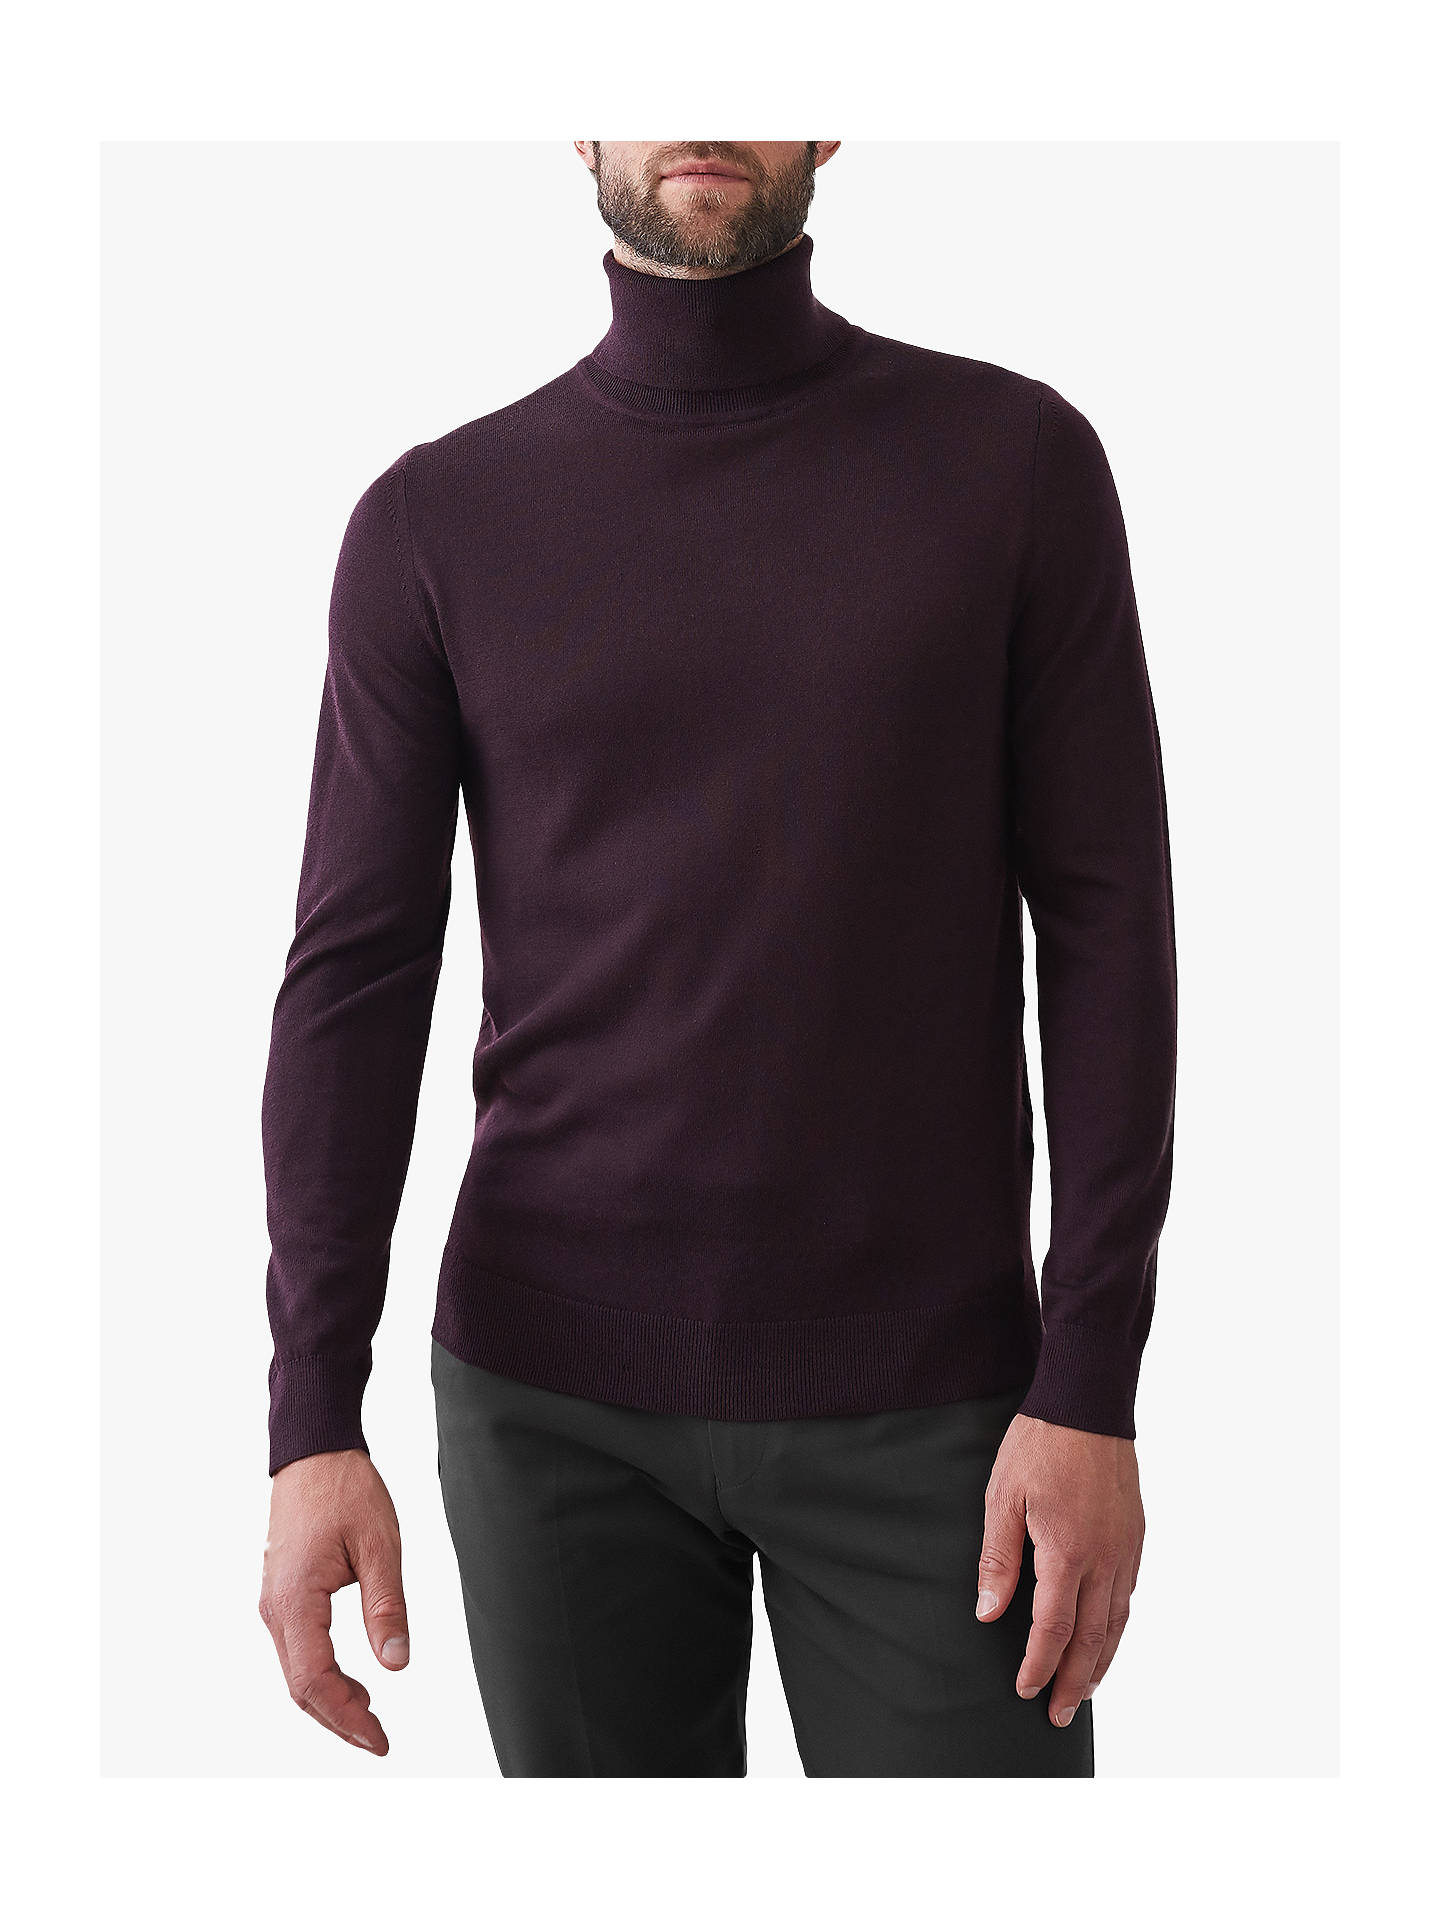 BuyReiss Cain Roll Neck Wool Jumper, Bordeaux, S Online at johnlewis.com